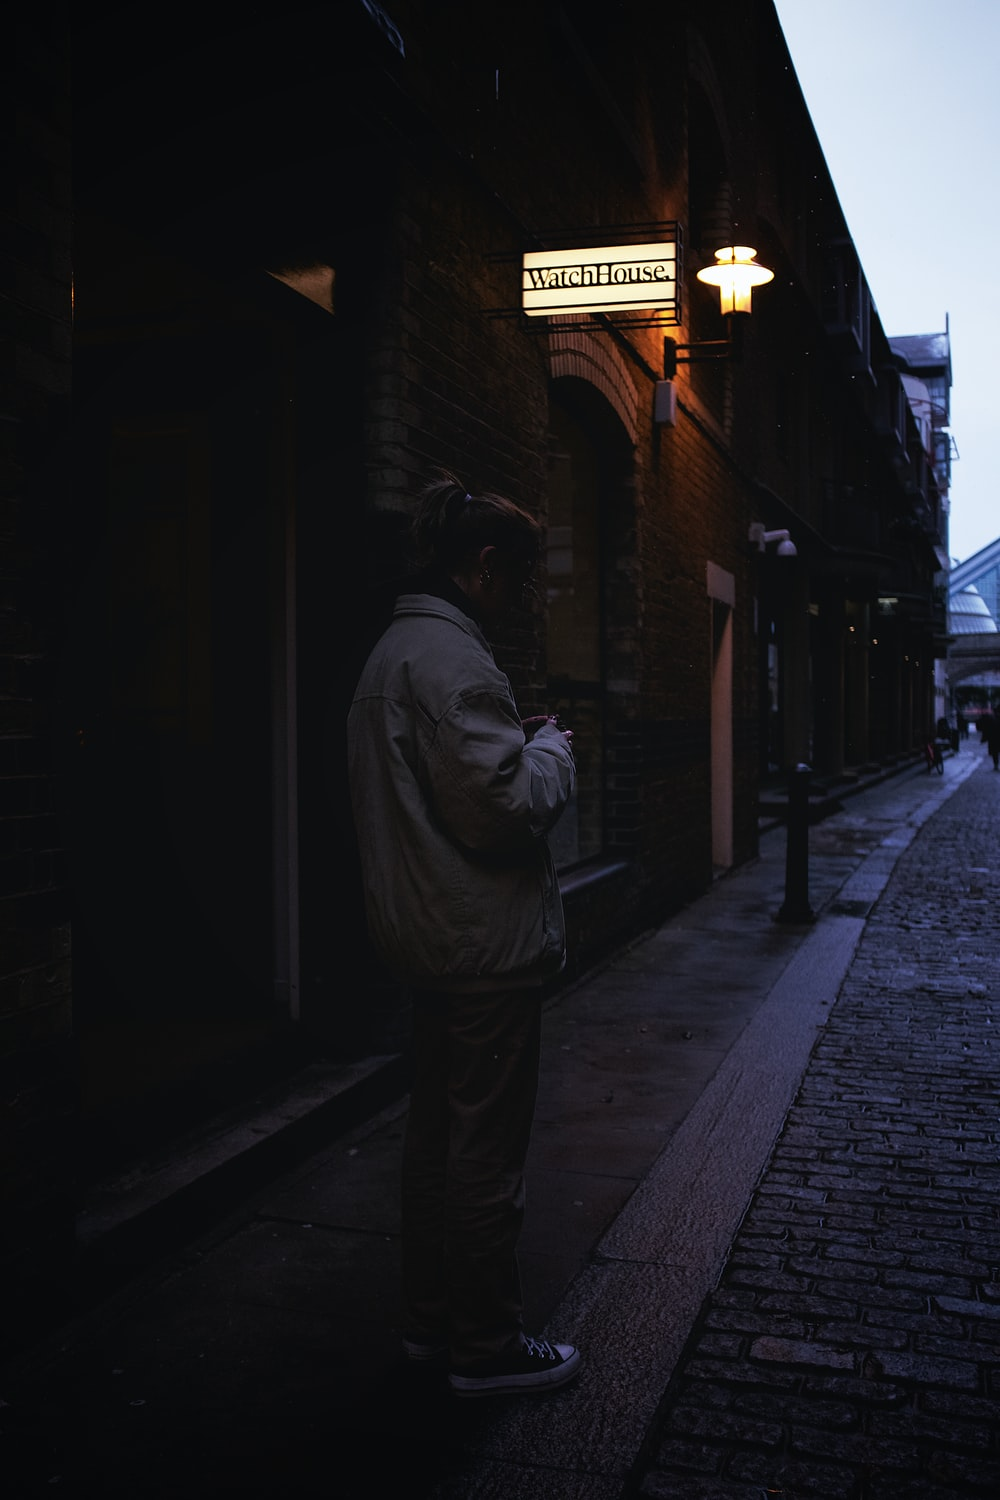 man in gray jacket standing on sidewalk during night time